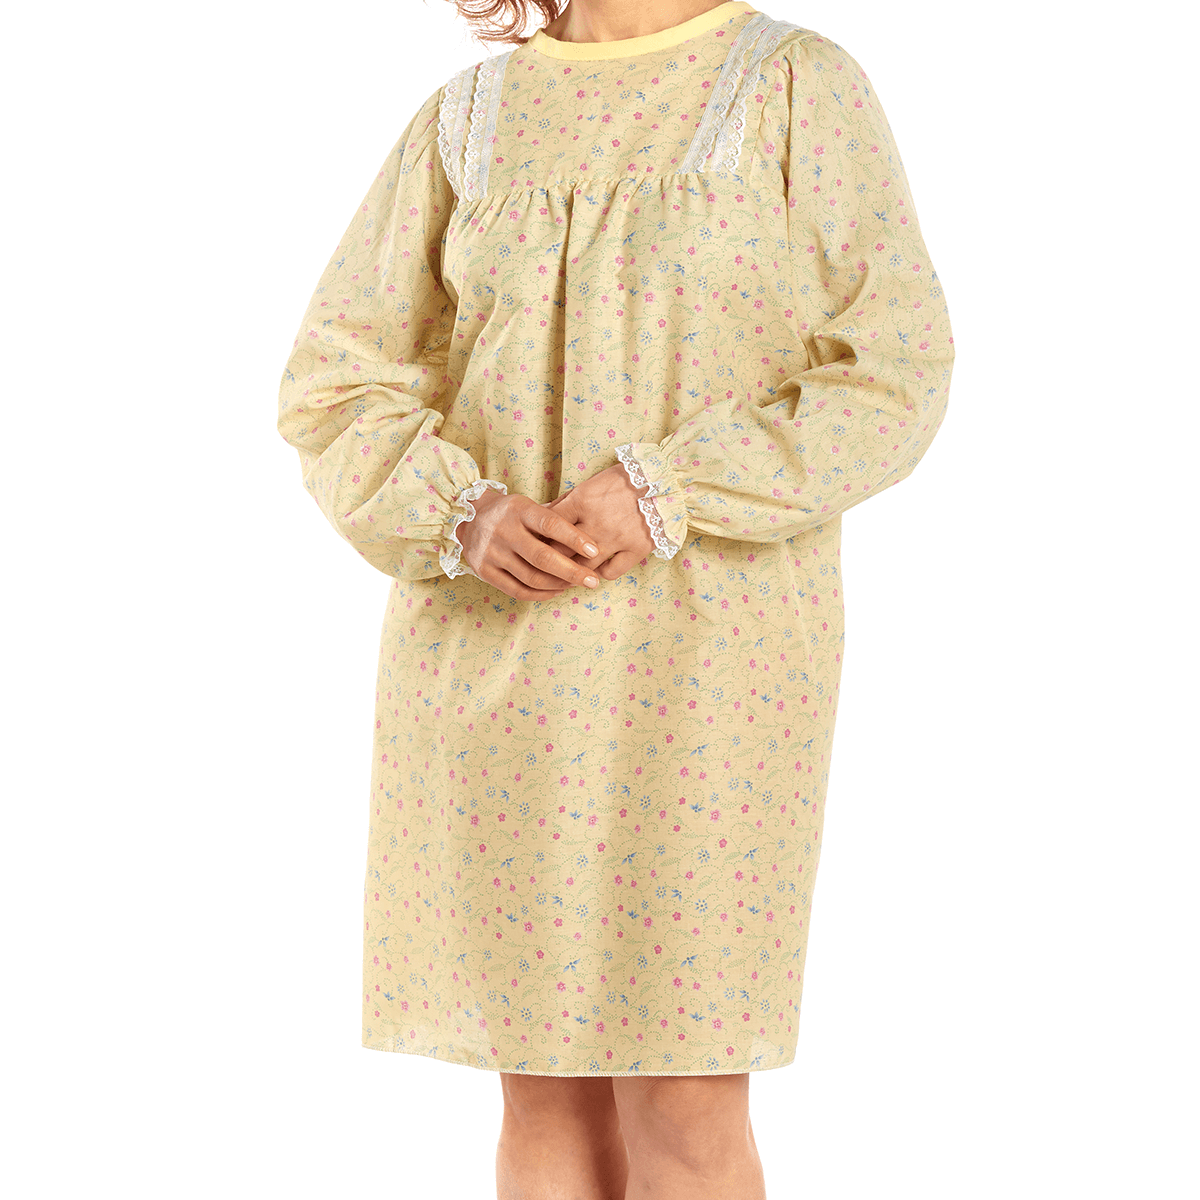 LadyLace™ Women's Long Sleeve Patient Gown